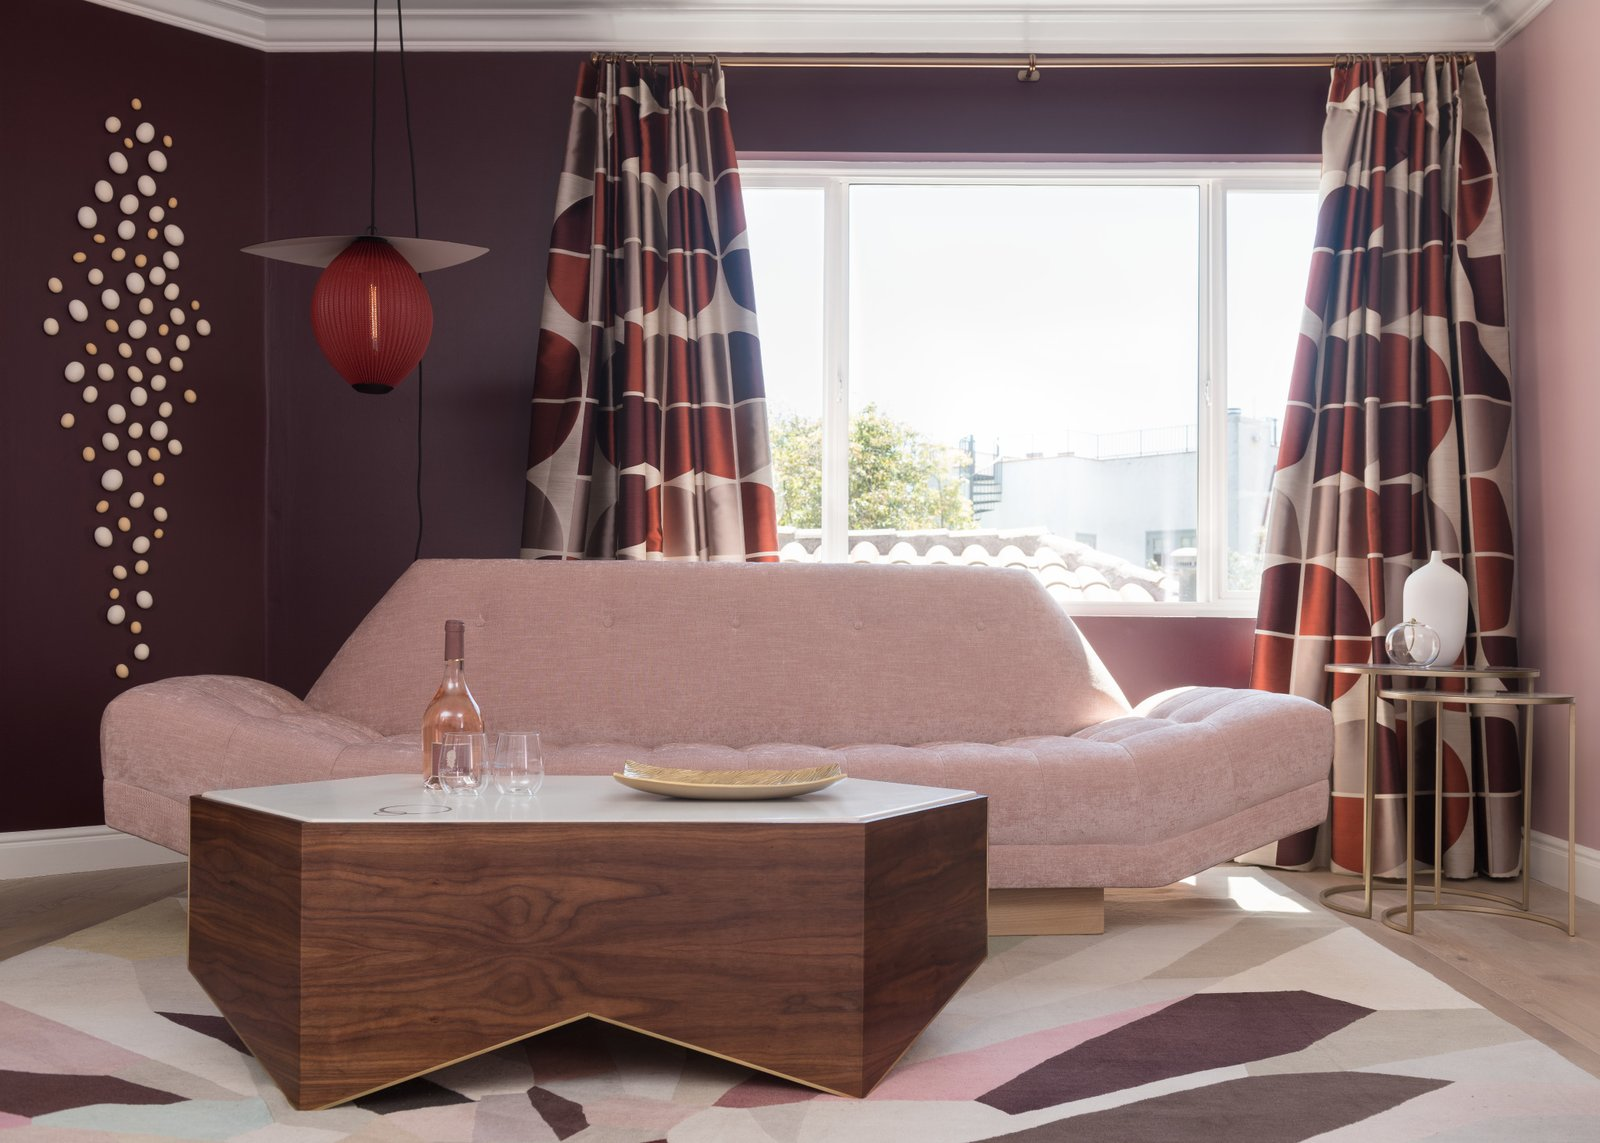 8 Rooms From the San Francisco Decorator Showcase That Won Us Over